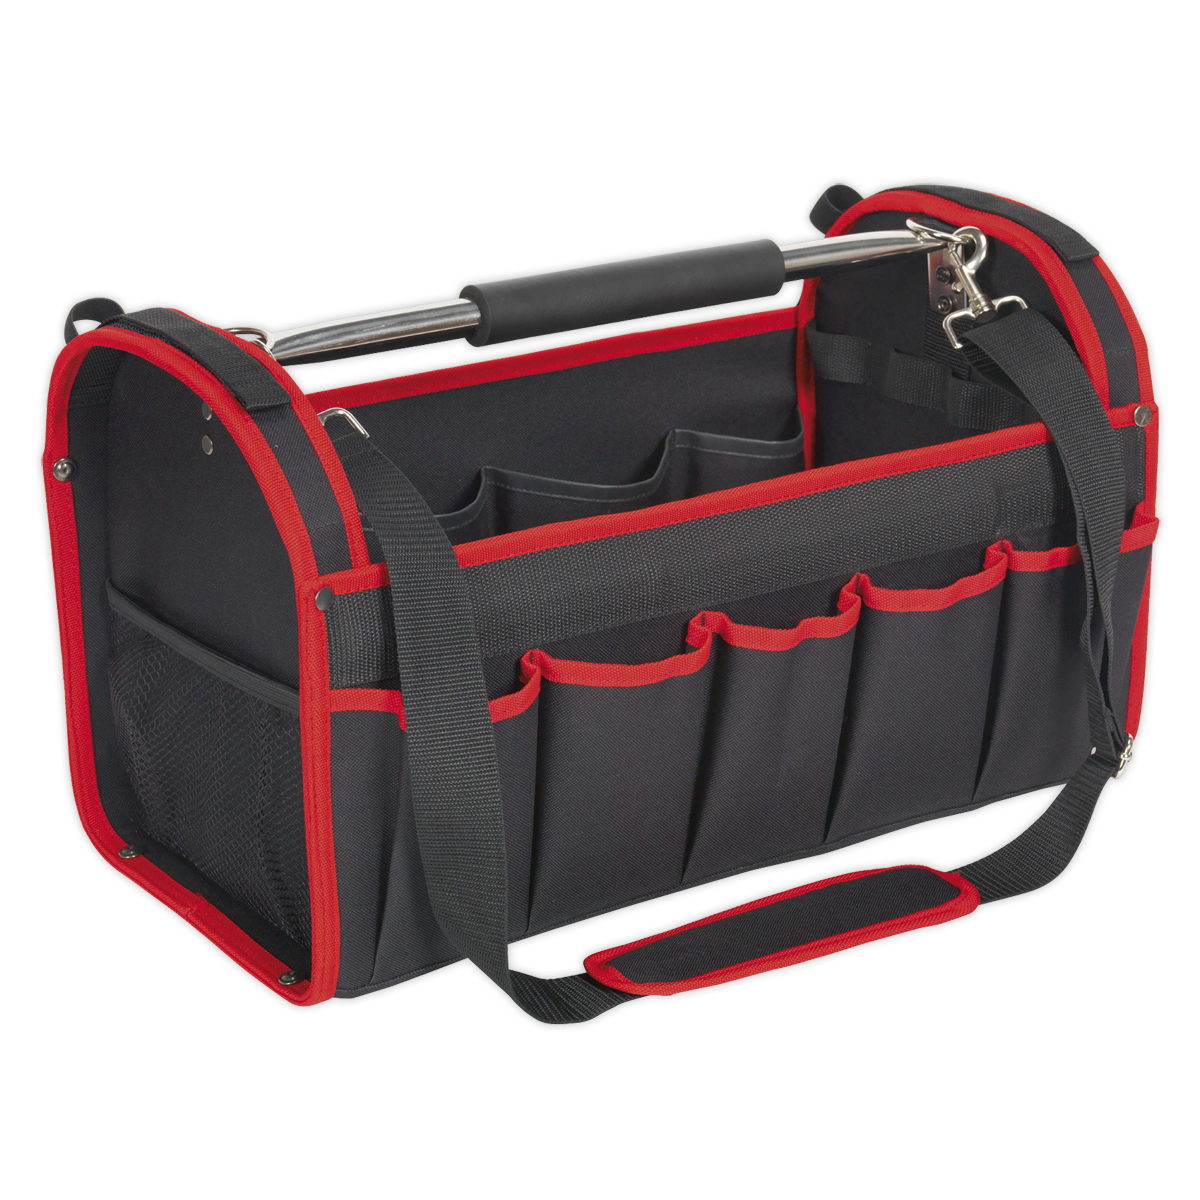 Open Tool Storage Bag 500mm   SEALEY AP505 by Sealey   New